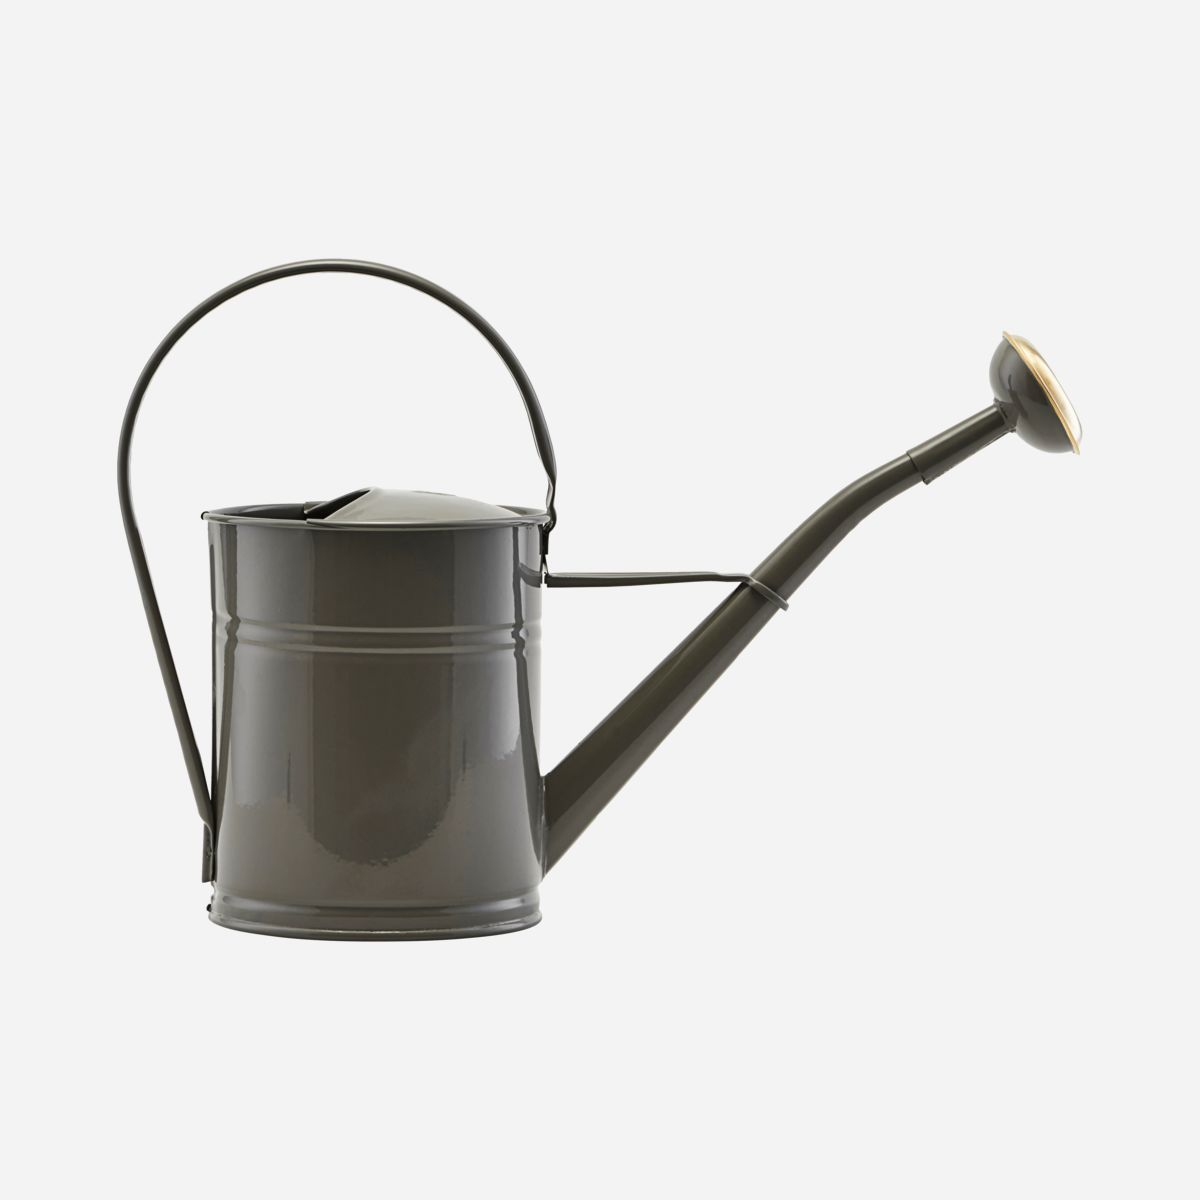 Watering can, Grey, 2 Liters